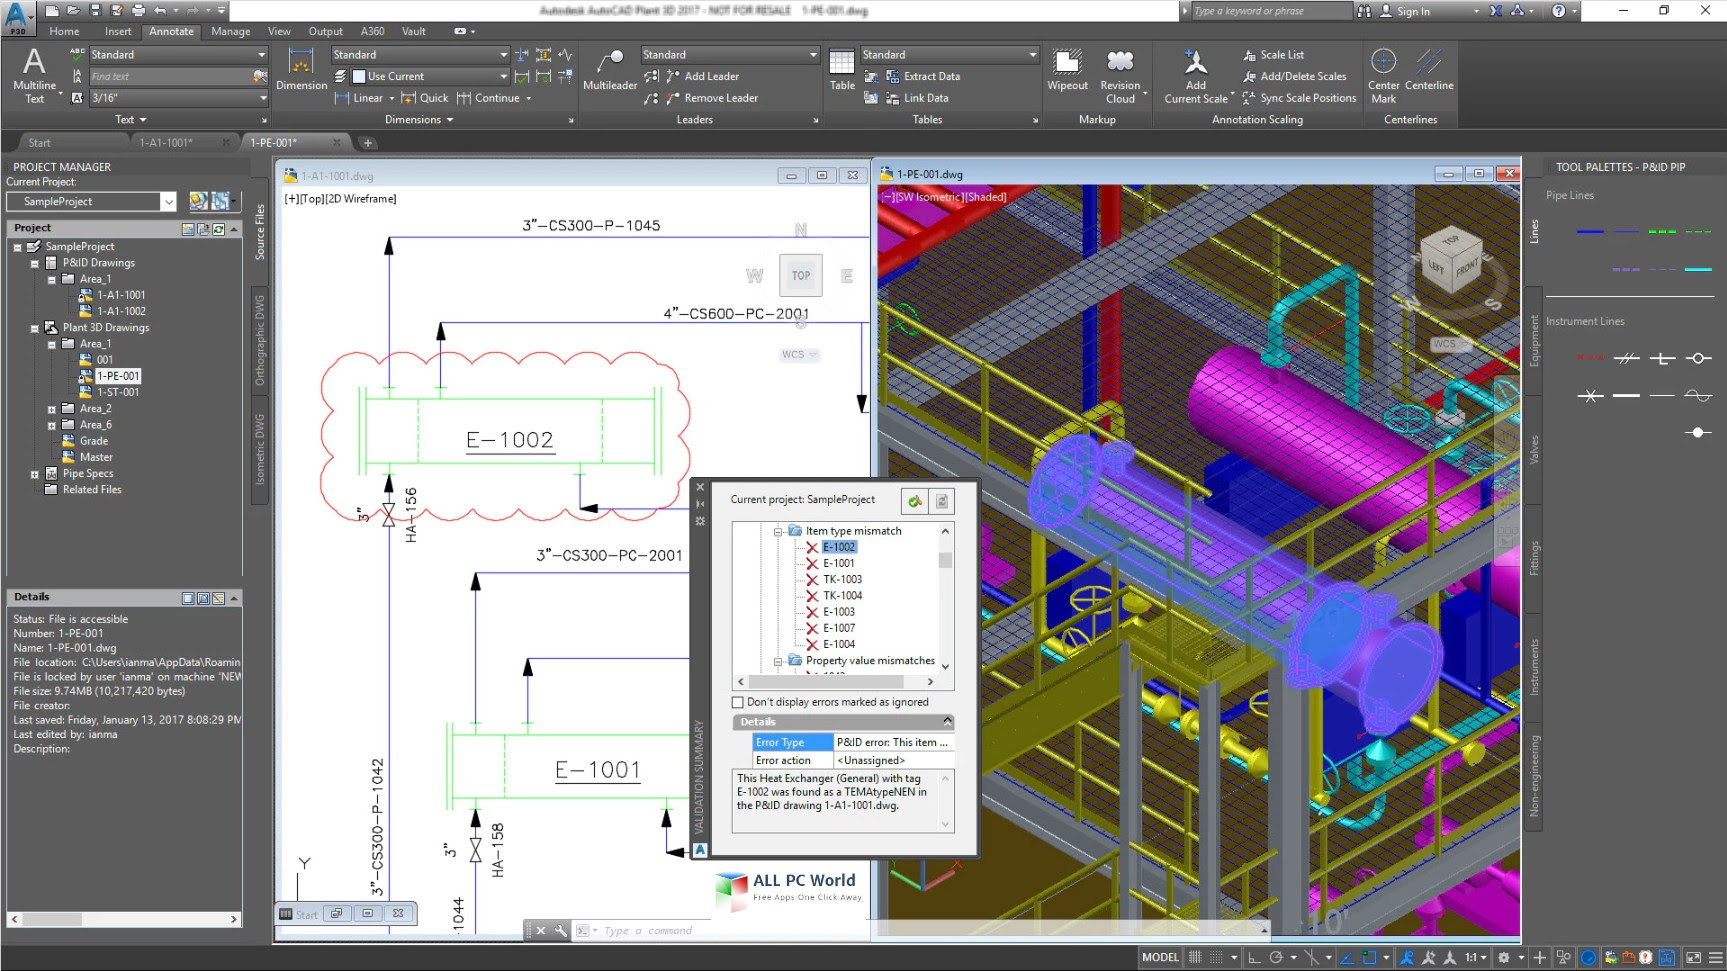 Autodesk Autocad Plant 3d 2019 Win64 Download Pc Download Film - get free robux pro tips guide robux free 2019 apk by stud inc